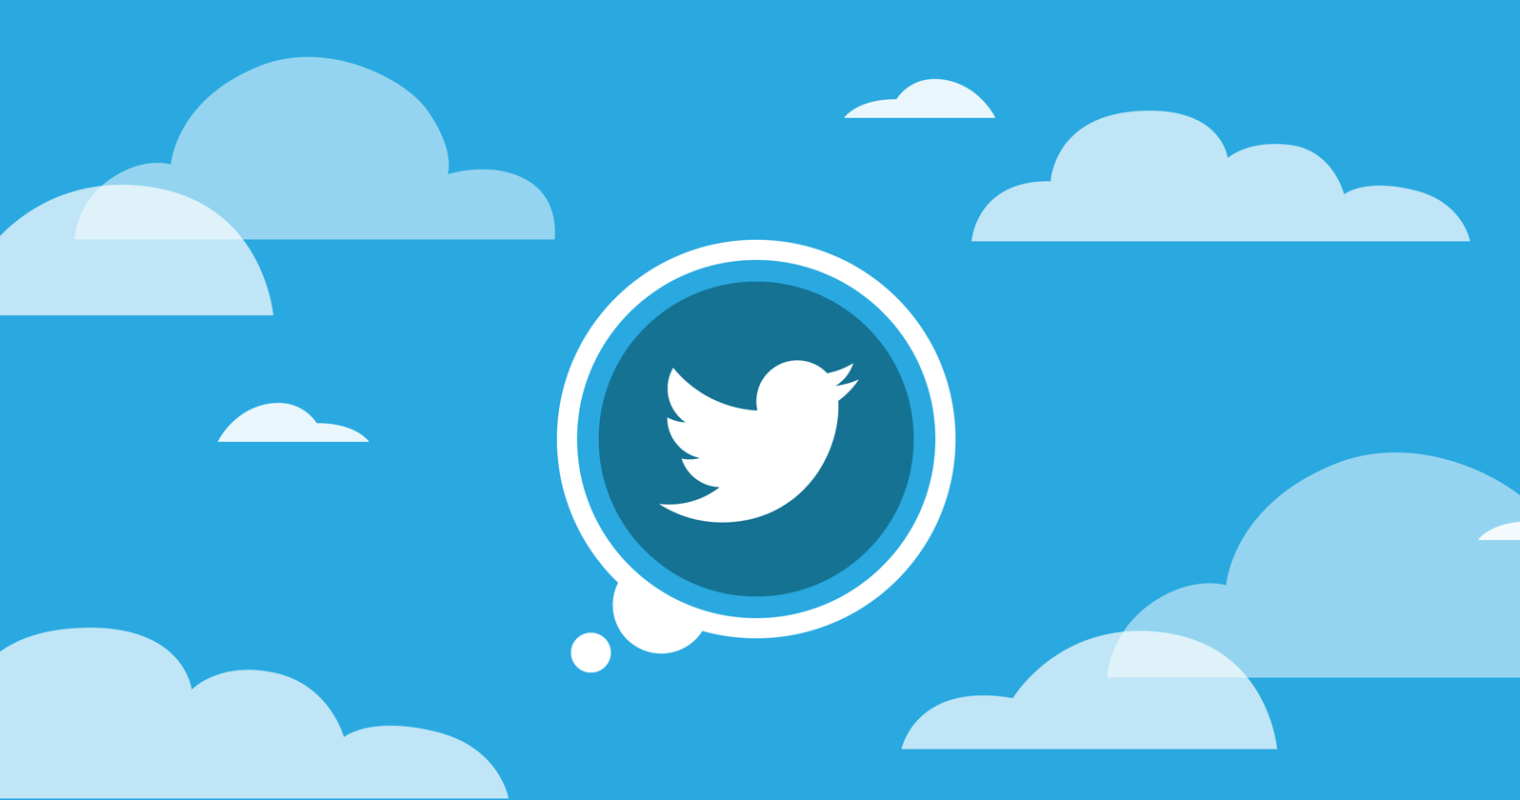 How To Change The Twitter Handle? Everything You Need To Know!